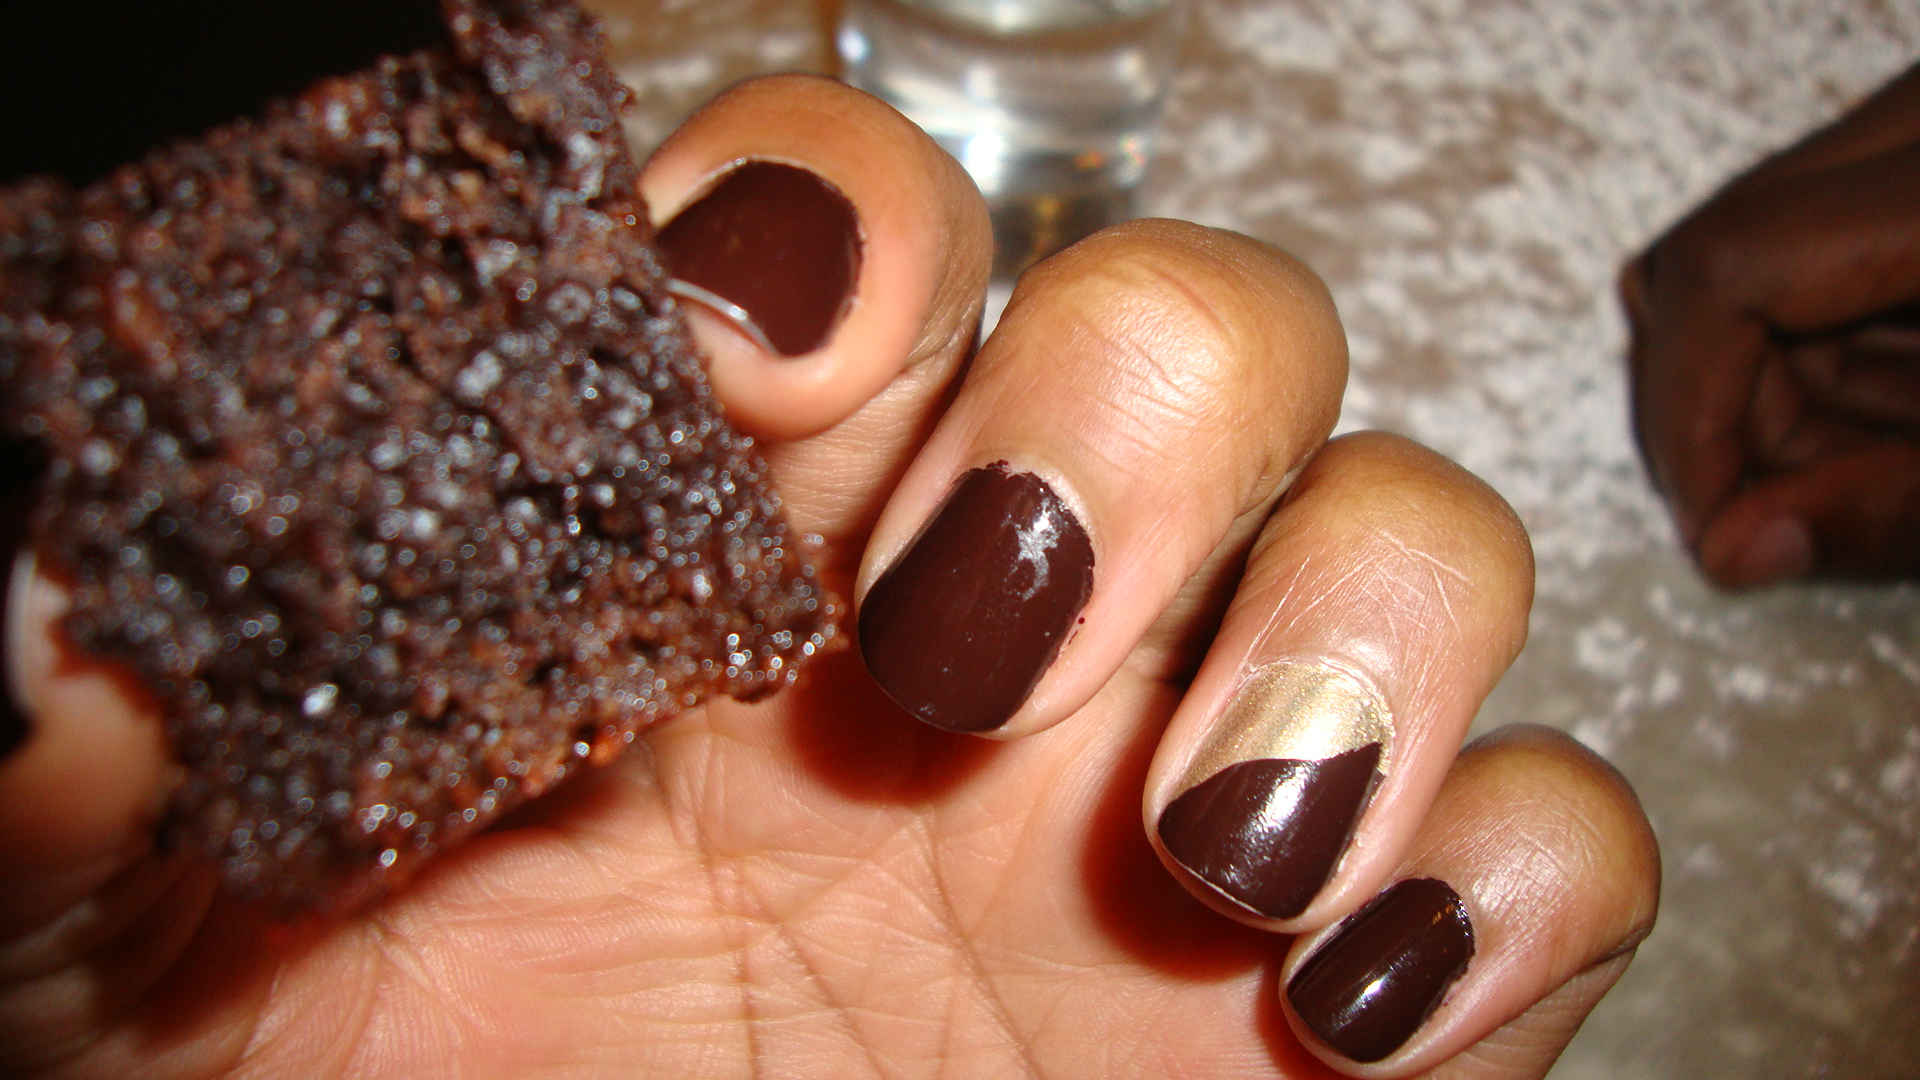 On my nails that day was: Sleek Plain Chocolate and Topshop Nails Heart of Gold No.102